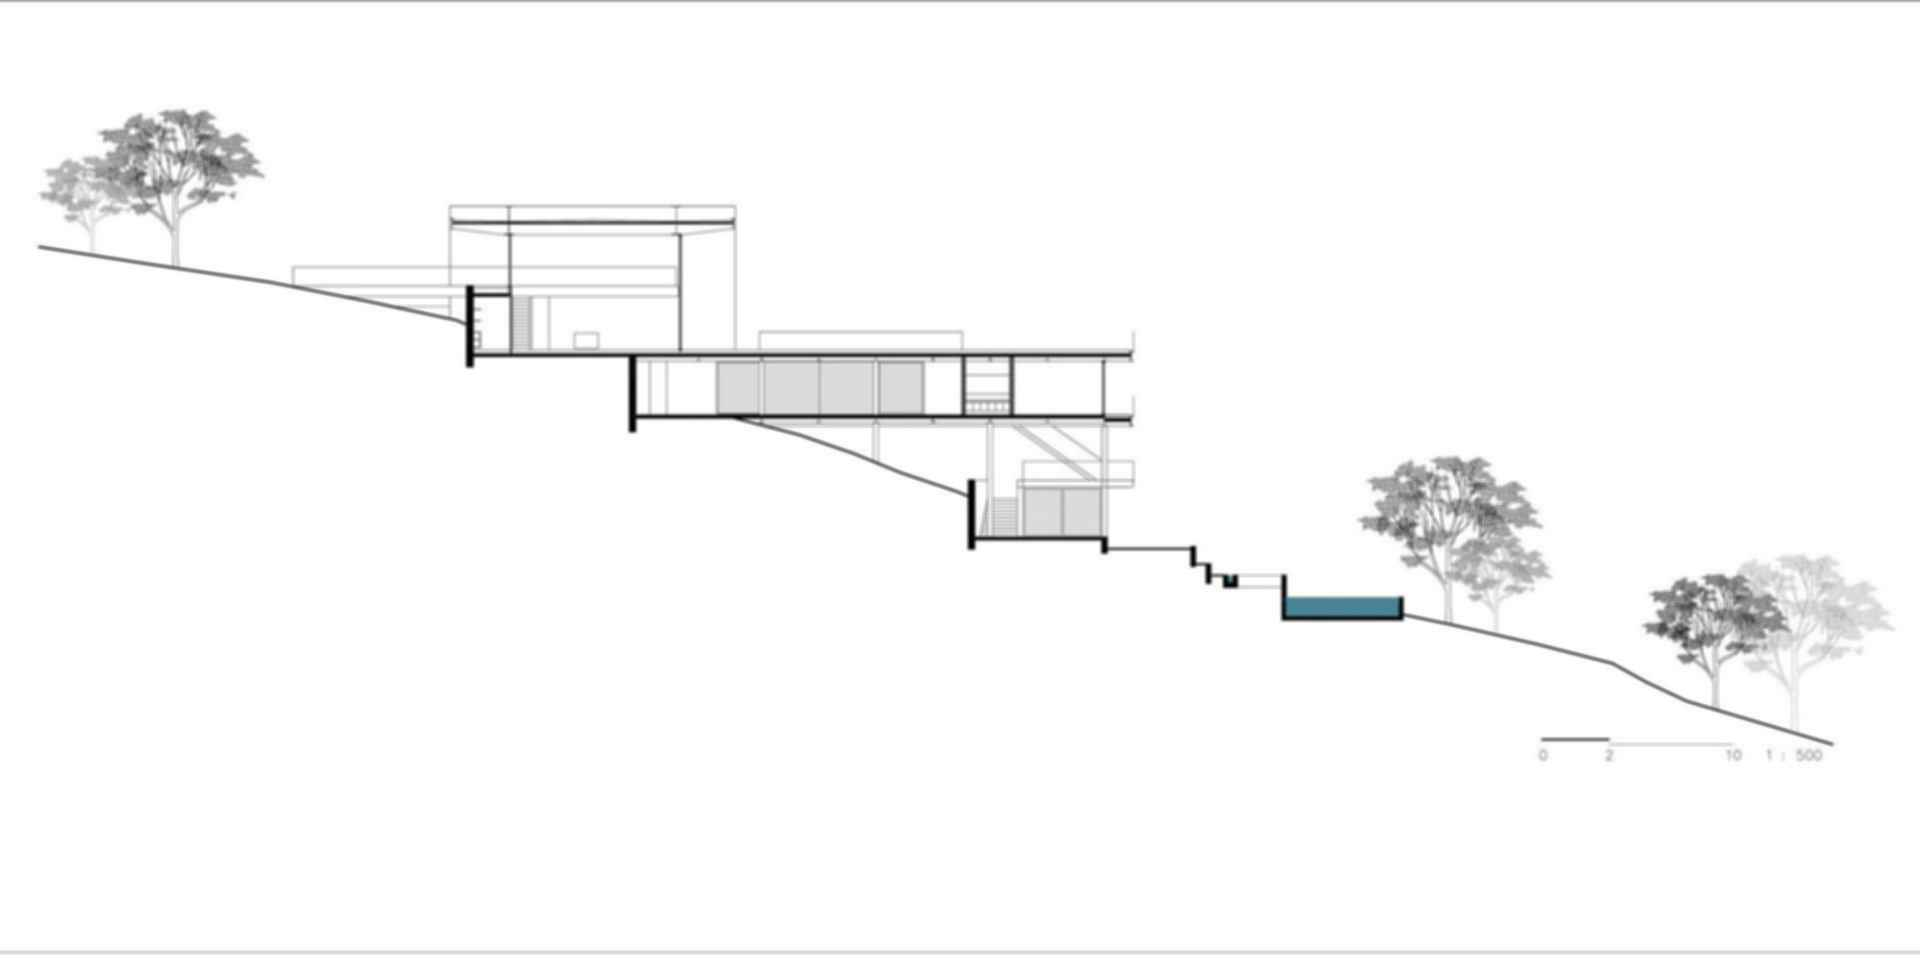 LLM House - Section